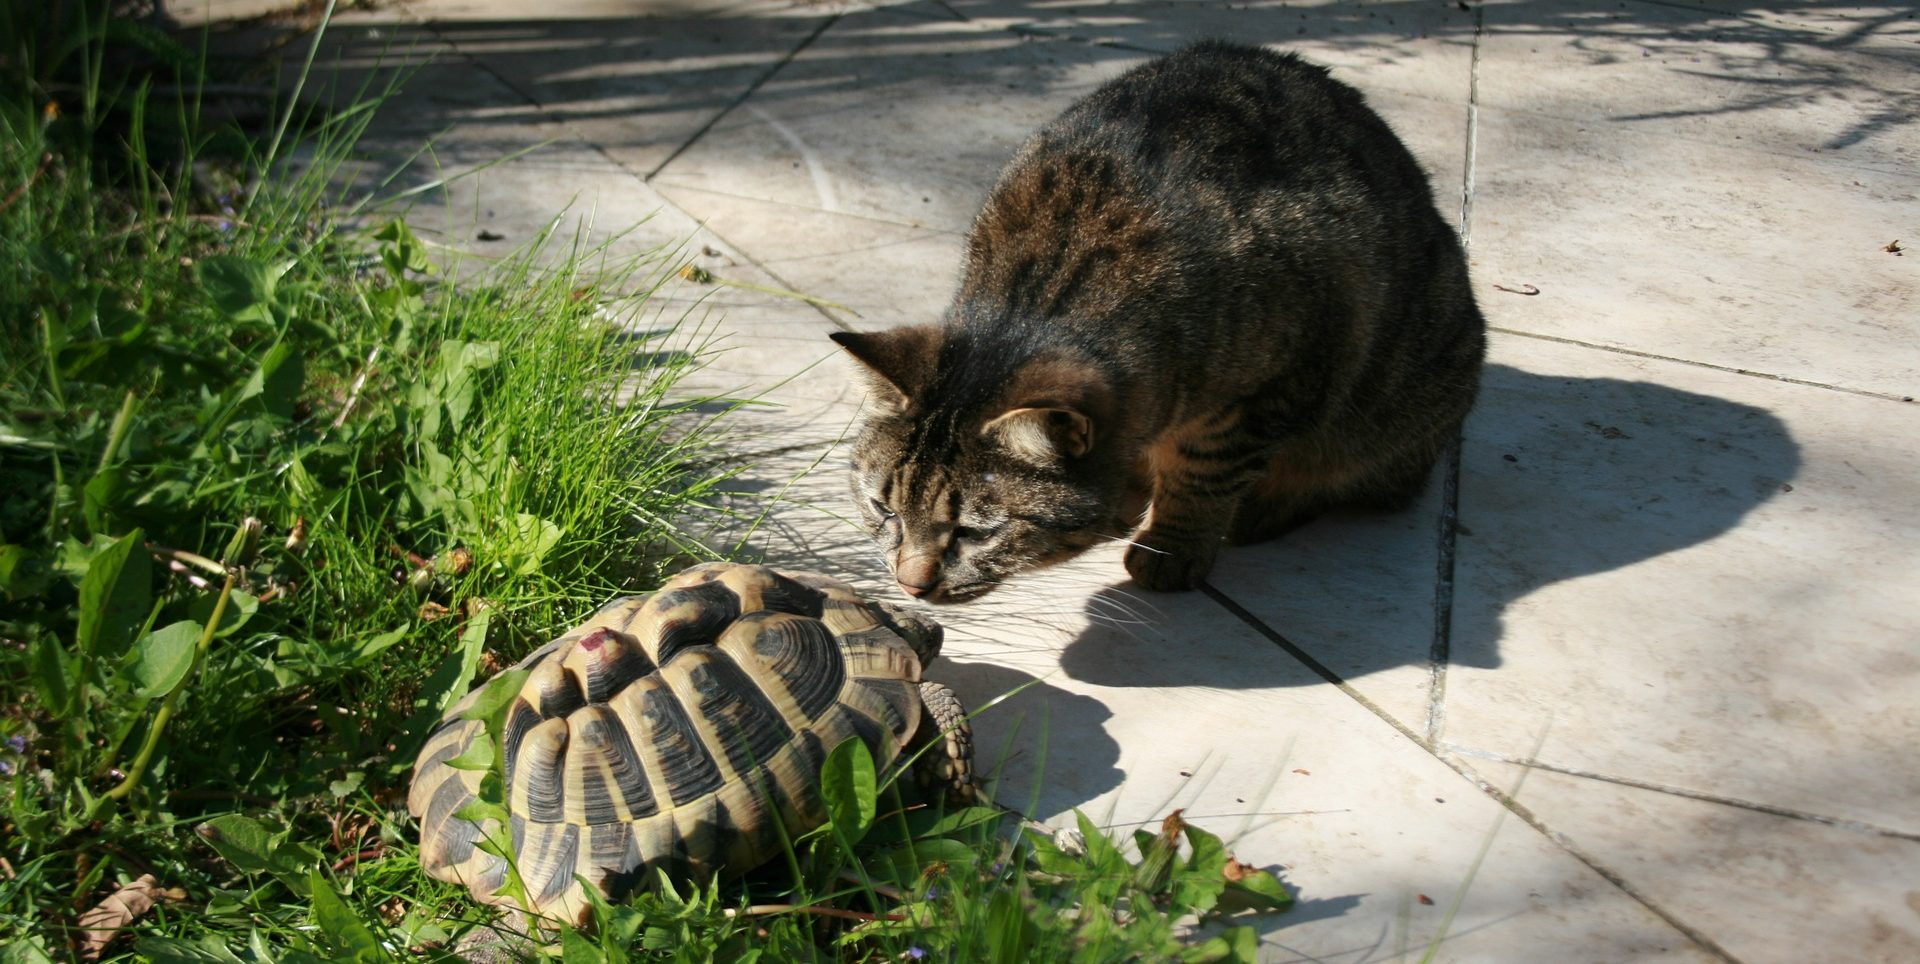 A turtle and cat make friends.